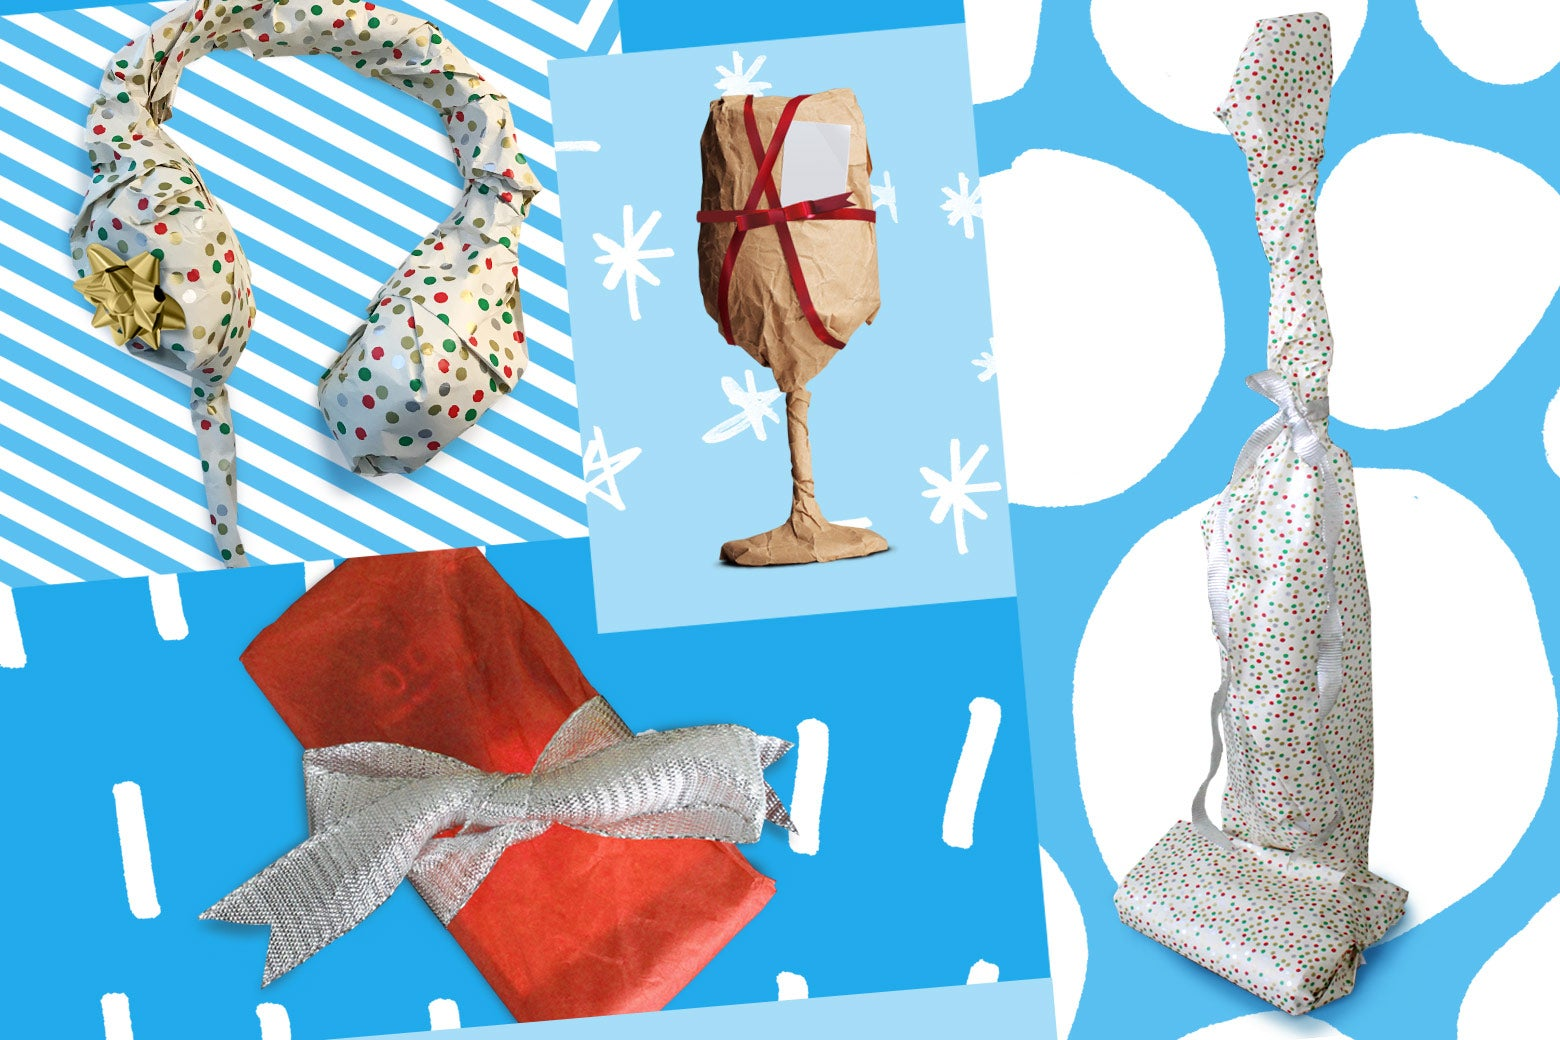 Wrapped gifts: headphones, wine glass, vacuum cleaner